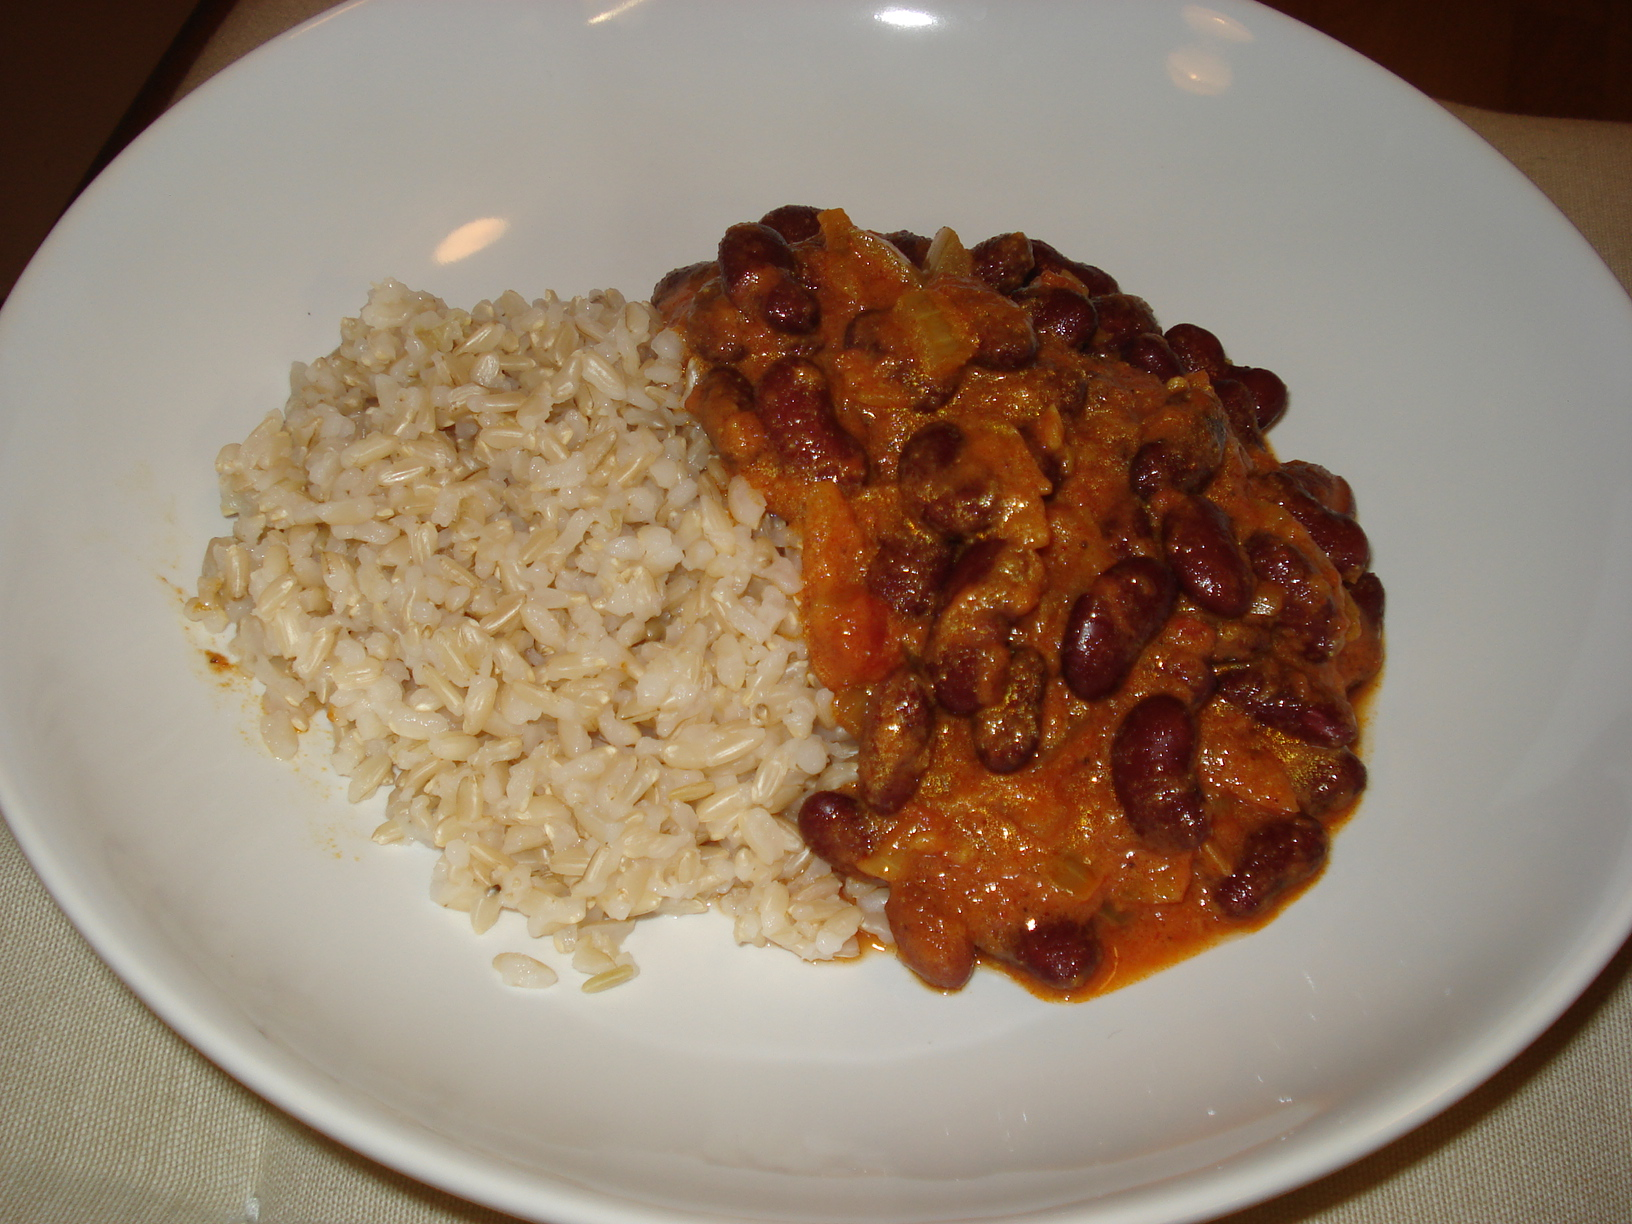 Kidney beans and rice (Rajma Chawal)